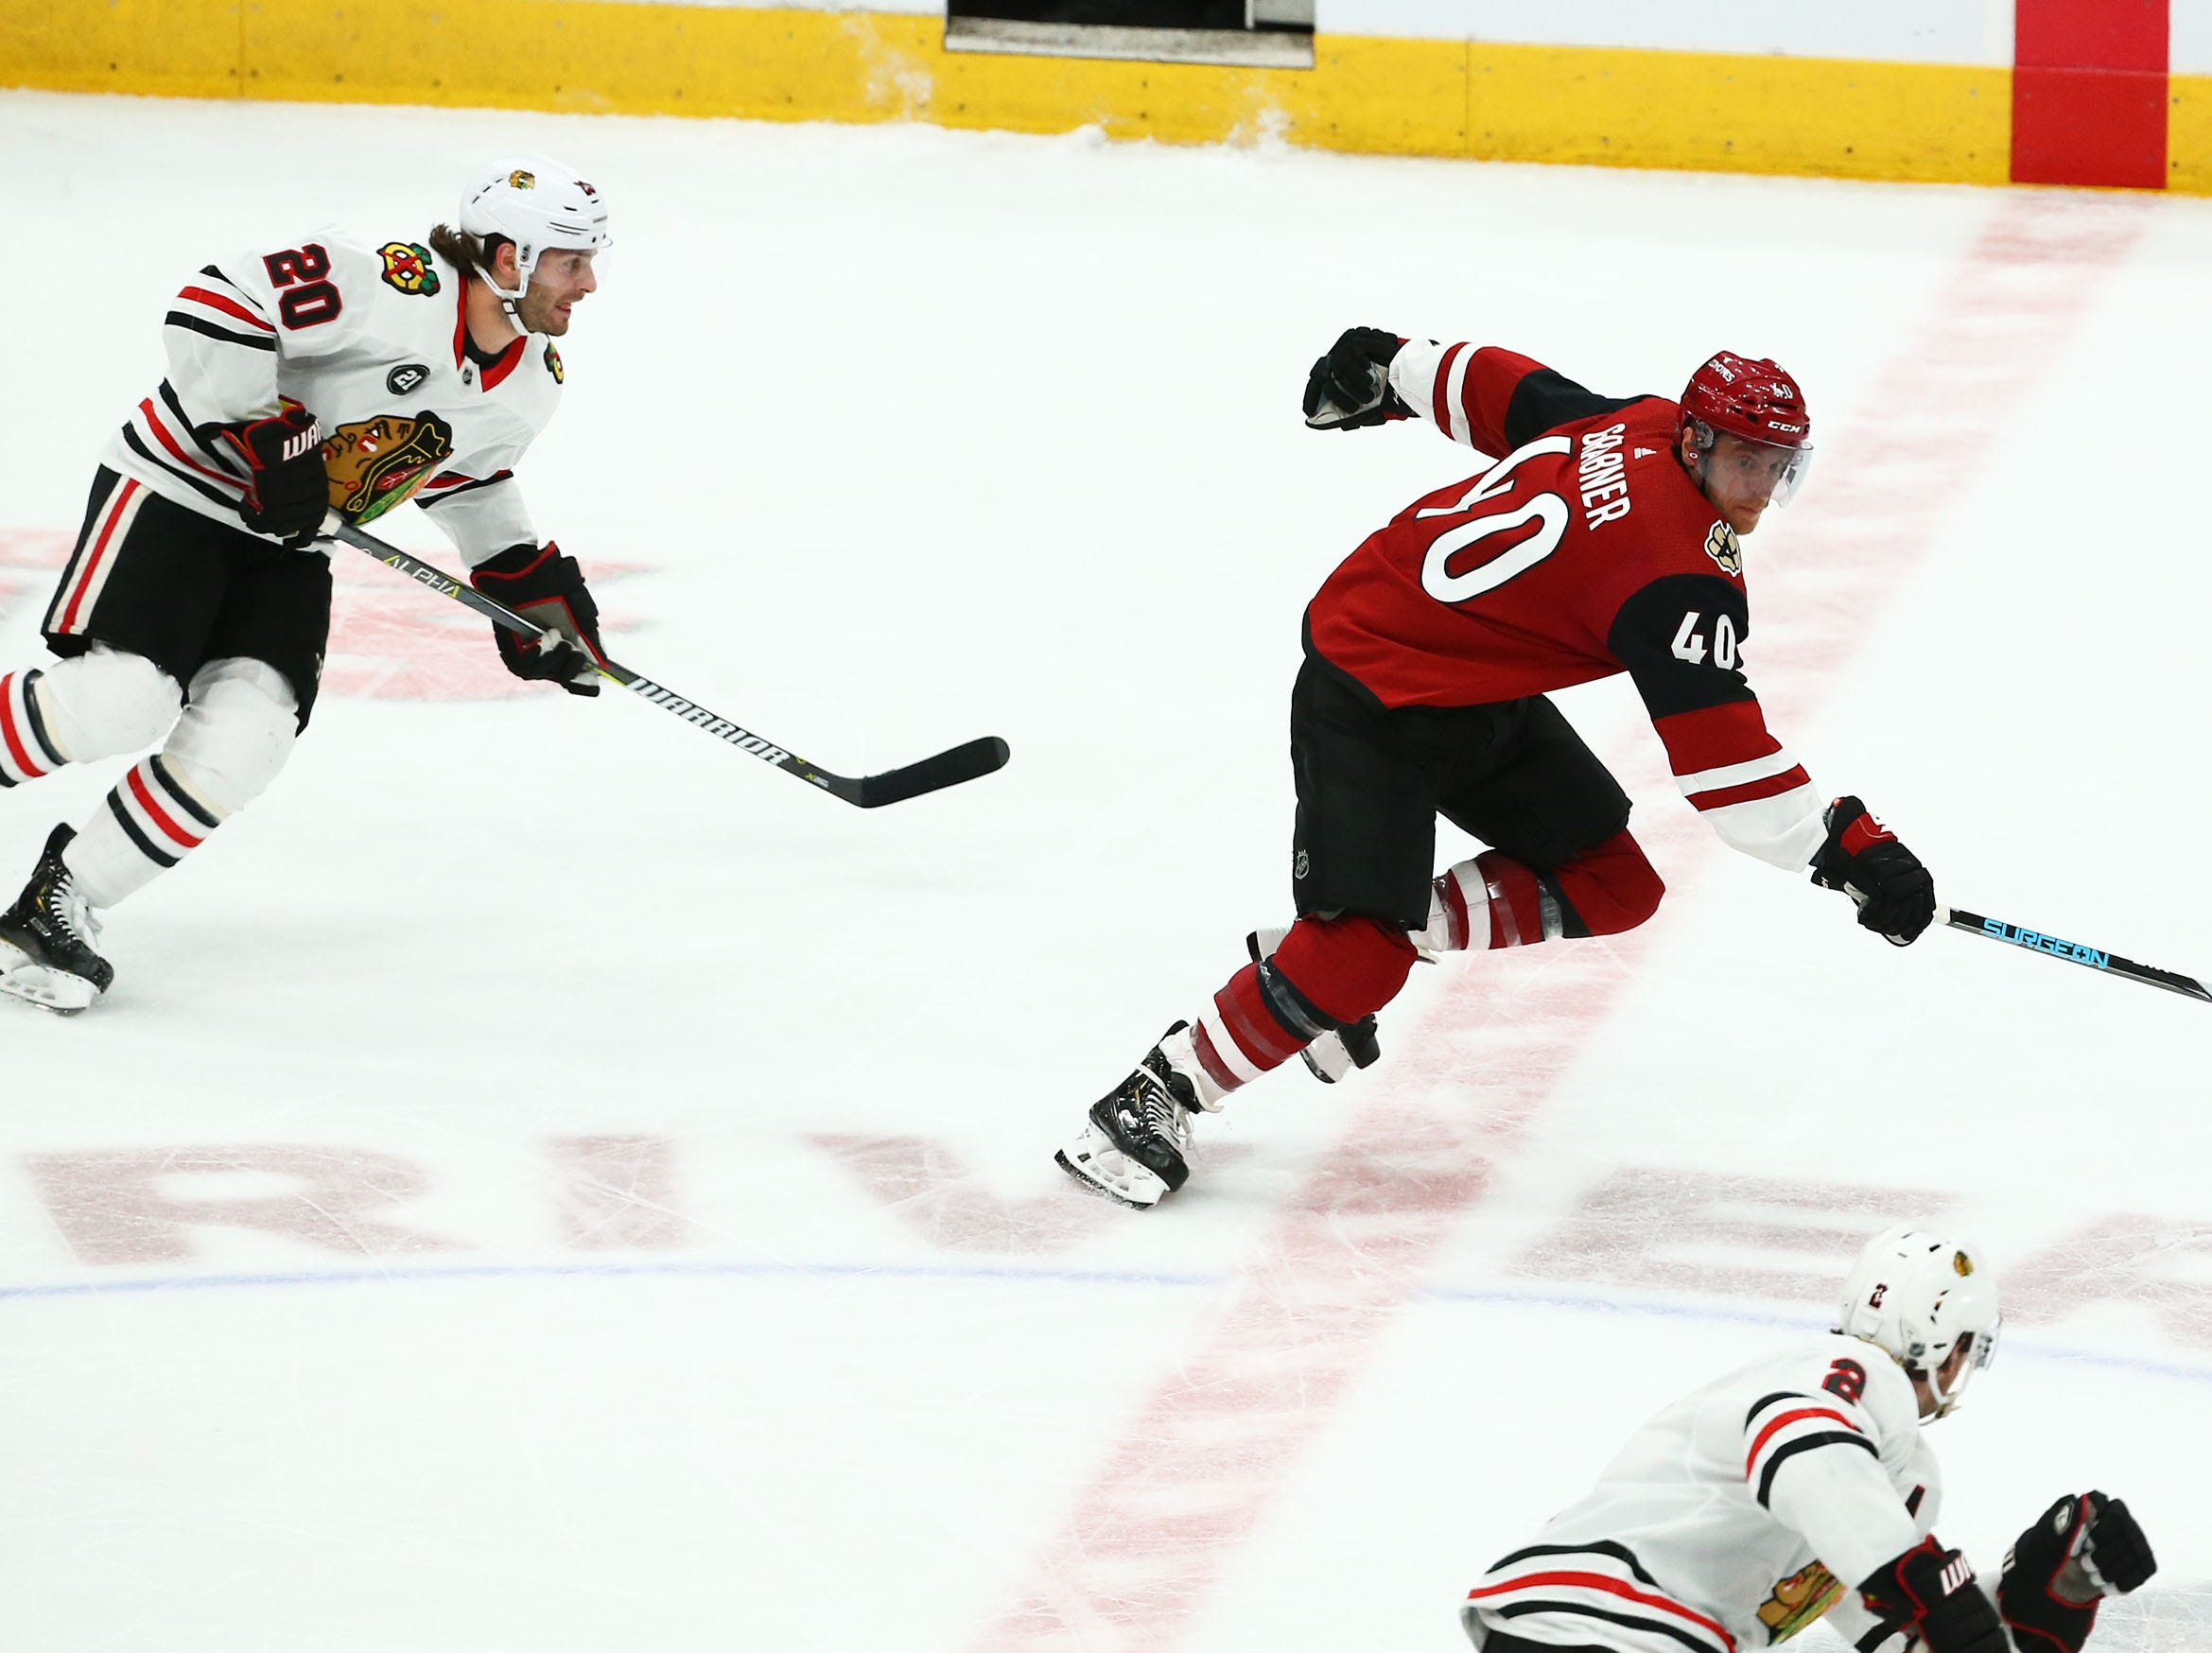 Arizona Coyotes right wing Michael Grabner (40) breaks away from Chicago Blackhawks left wing Brandon Saad (20) in the third period on Mar. 26, 2019, at Gila River Arena in Glendale, Ariz.